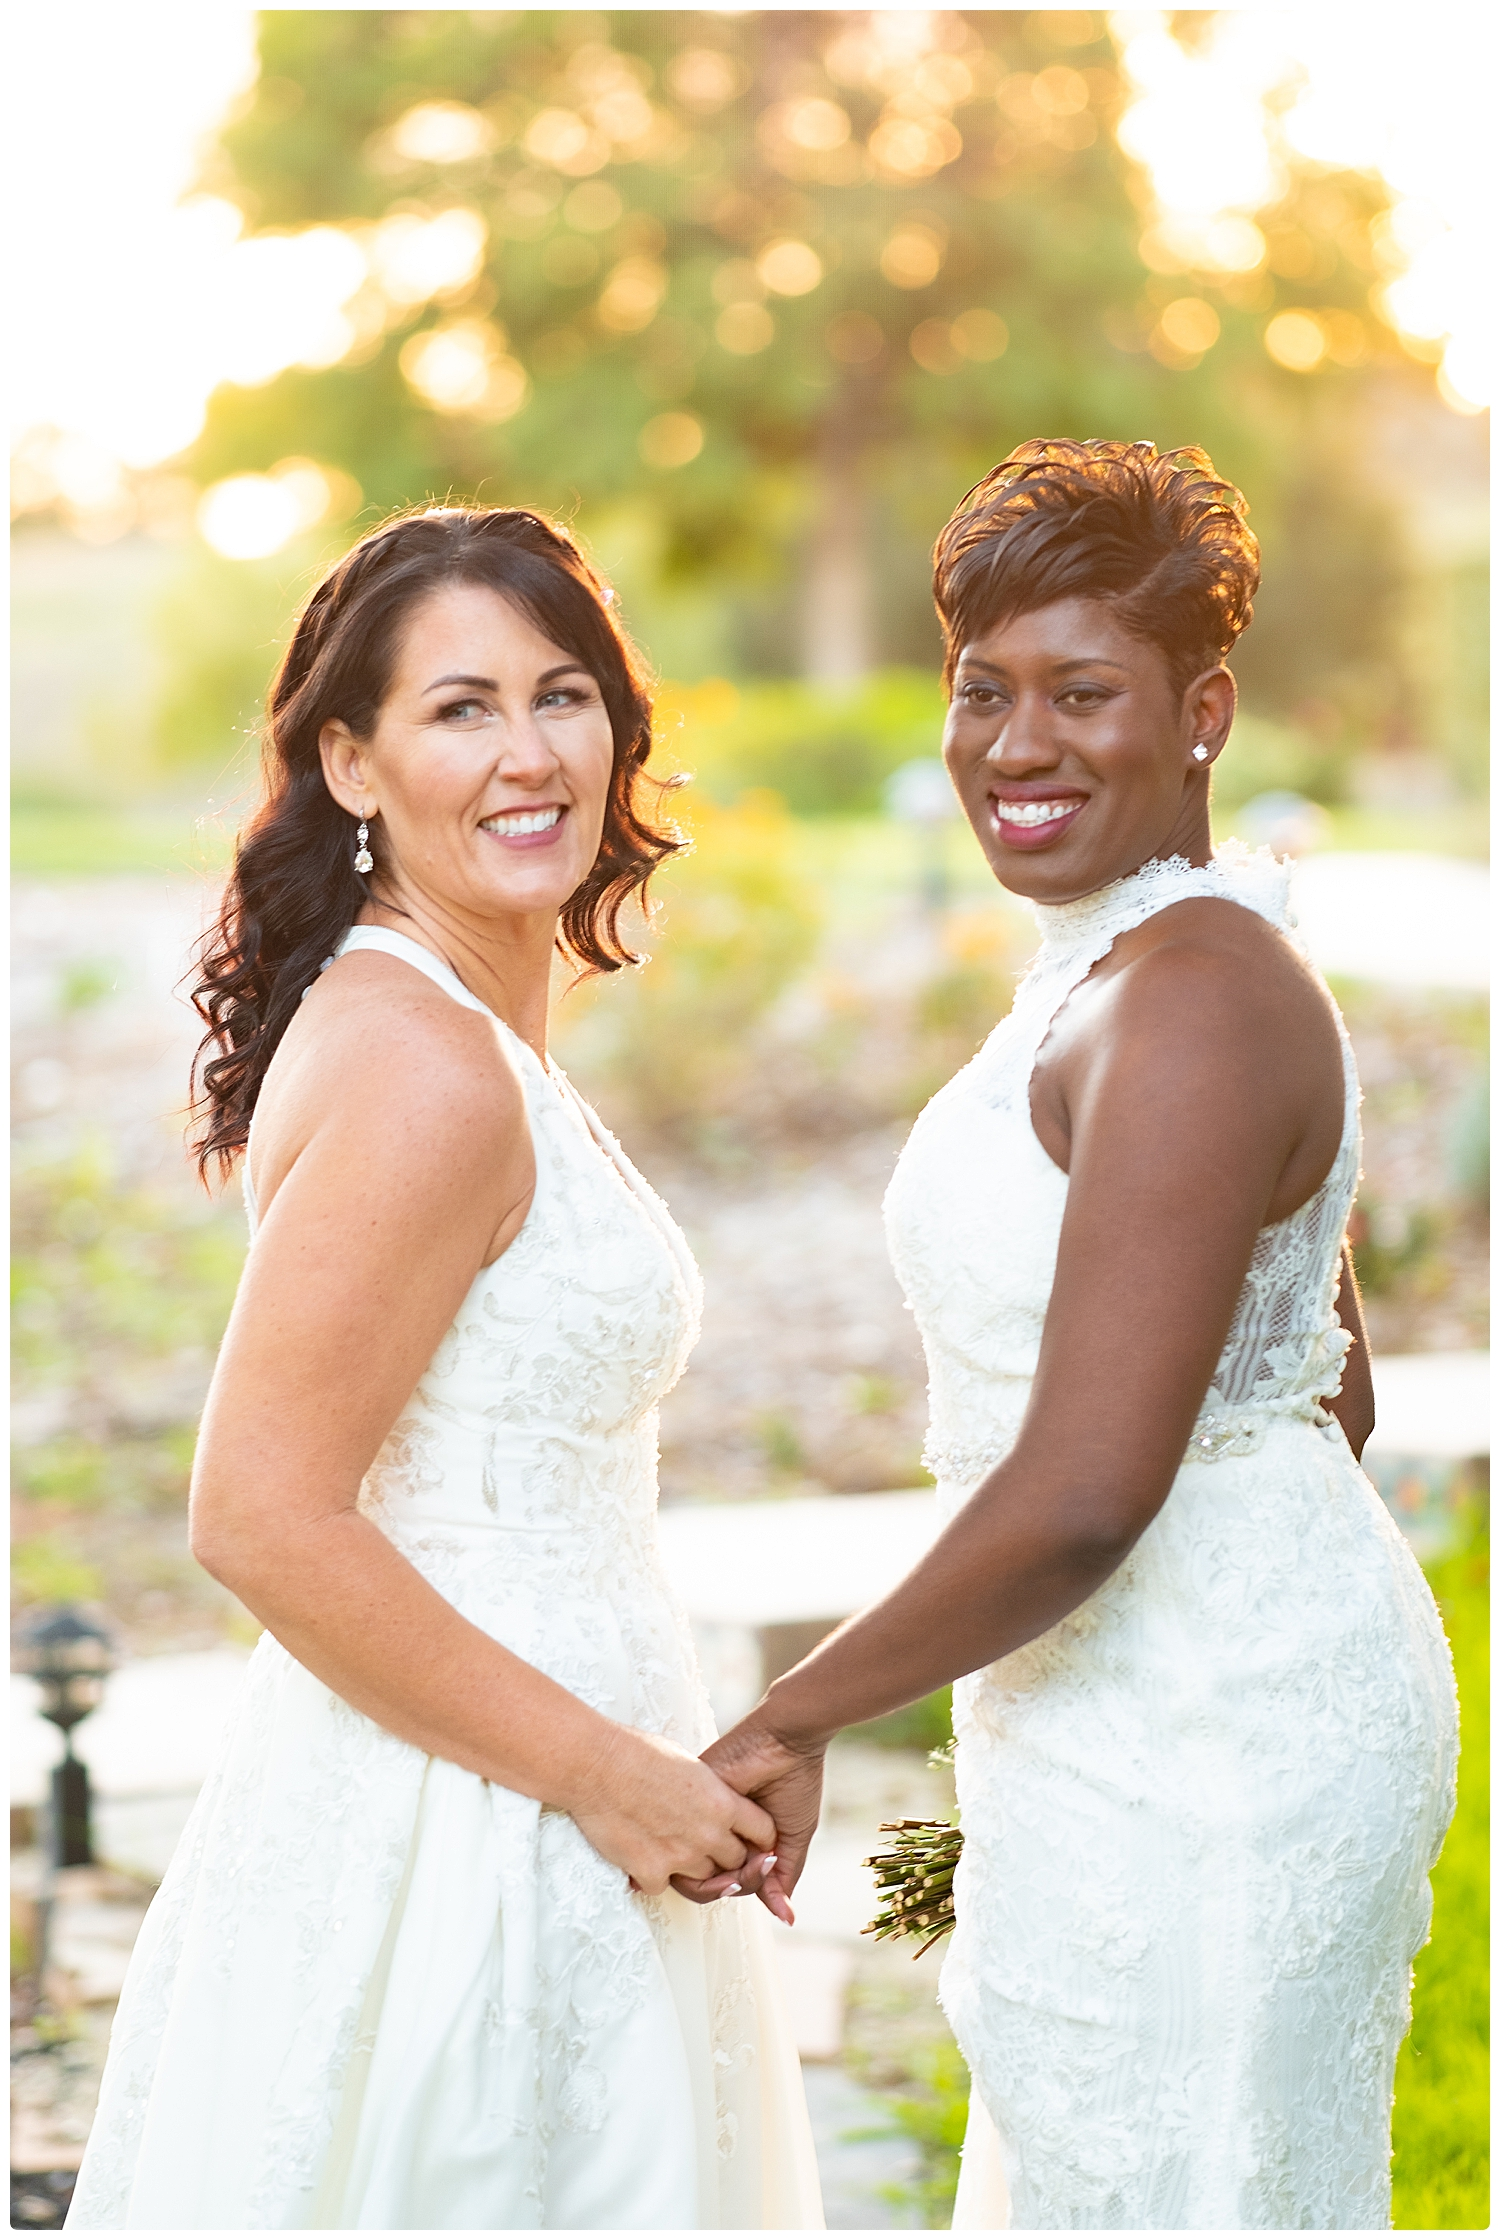 New Years Eve intimate wedding_Renoda Campbell Photography_LGBT wedding_0058.jpg